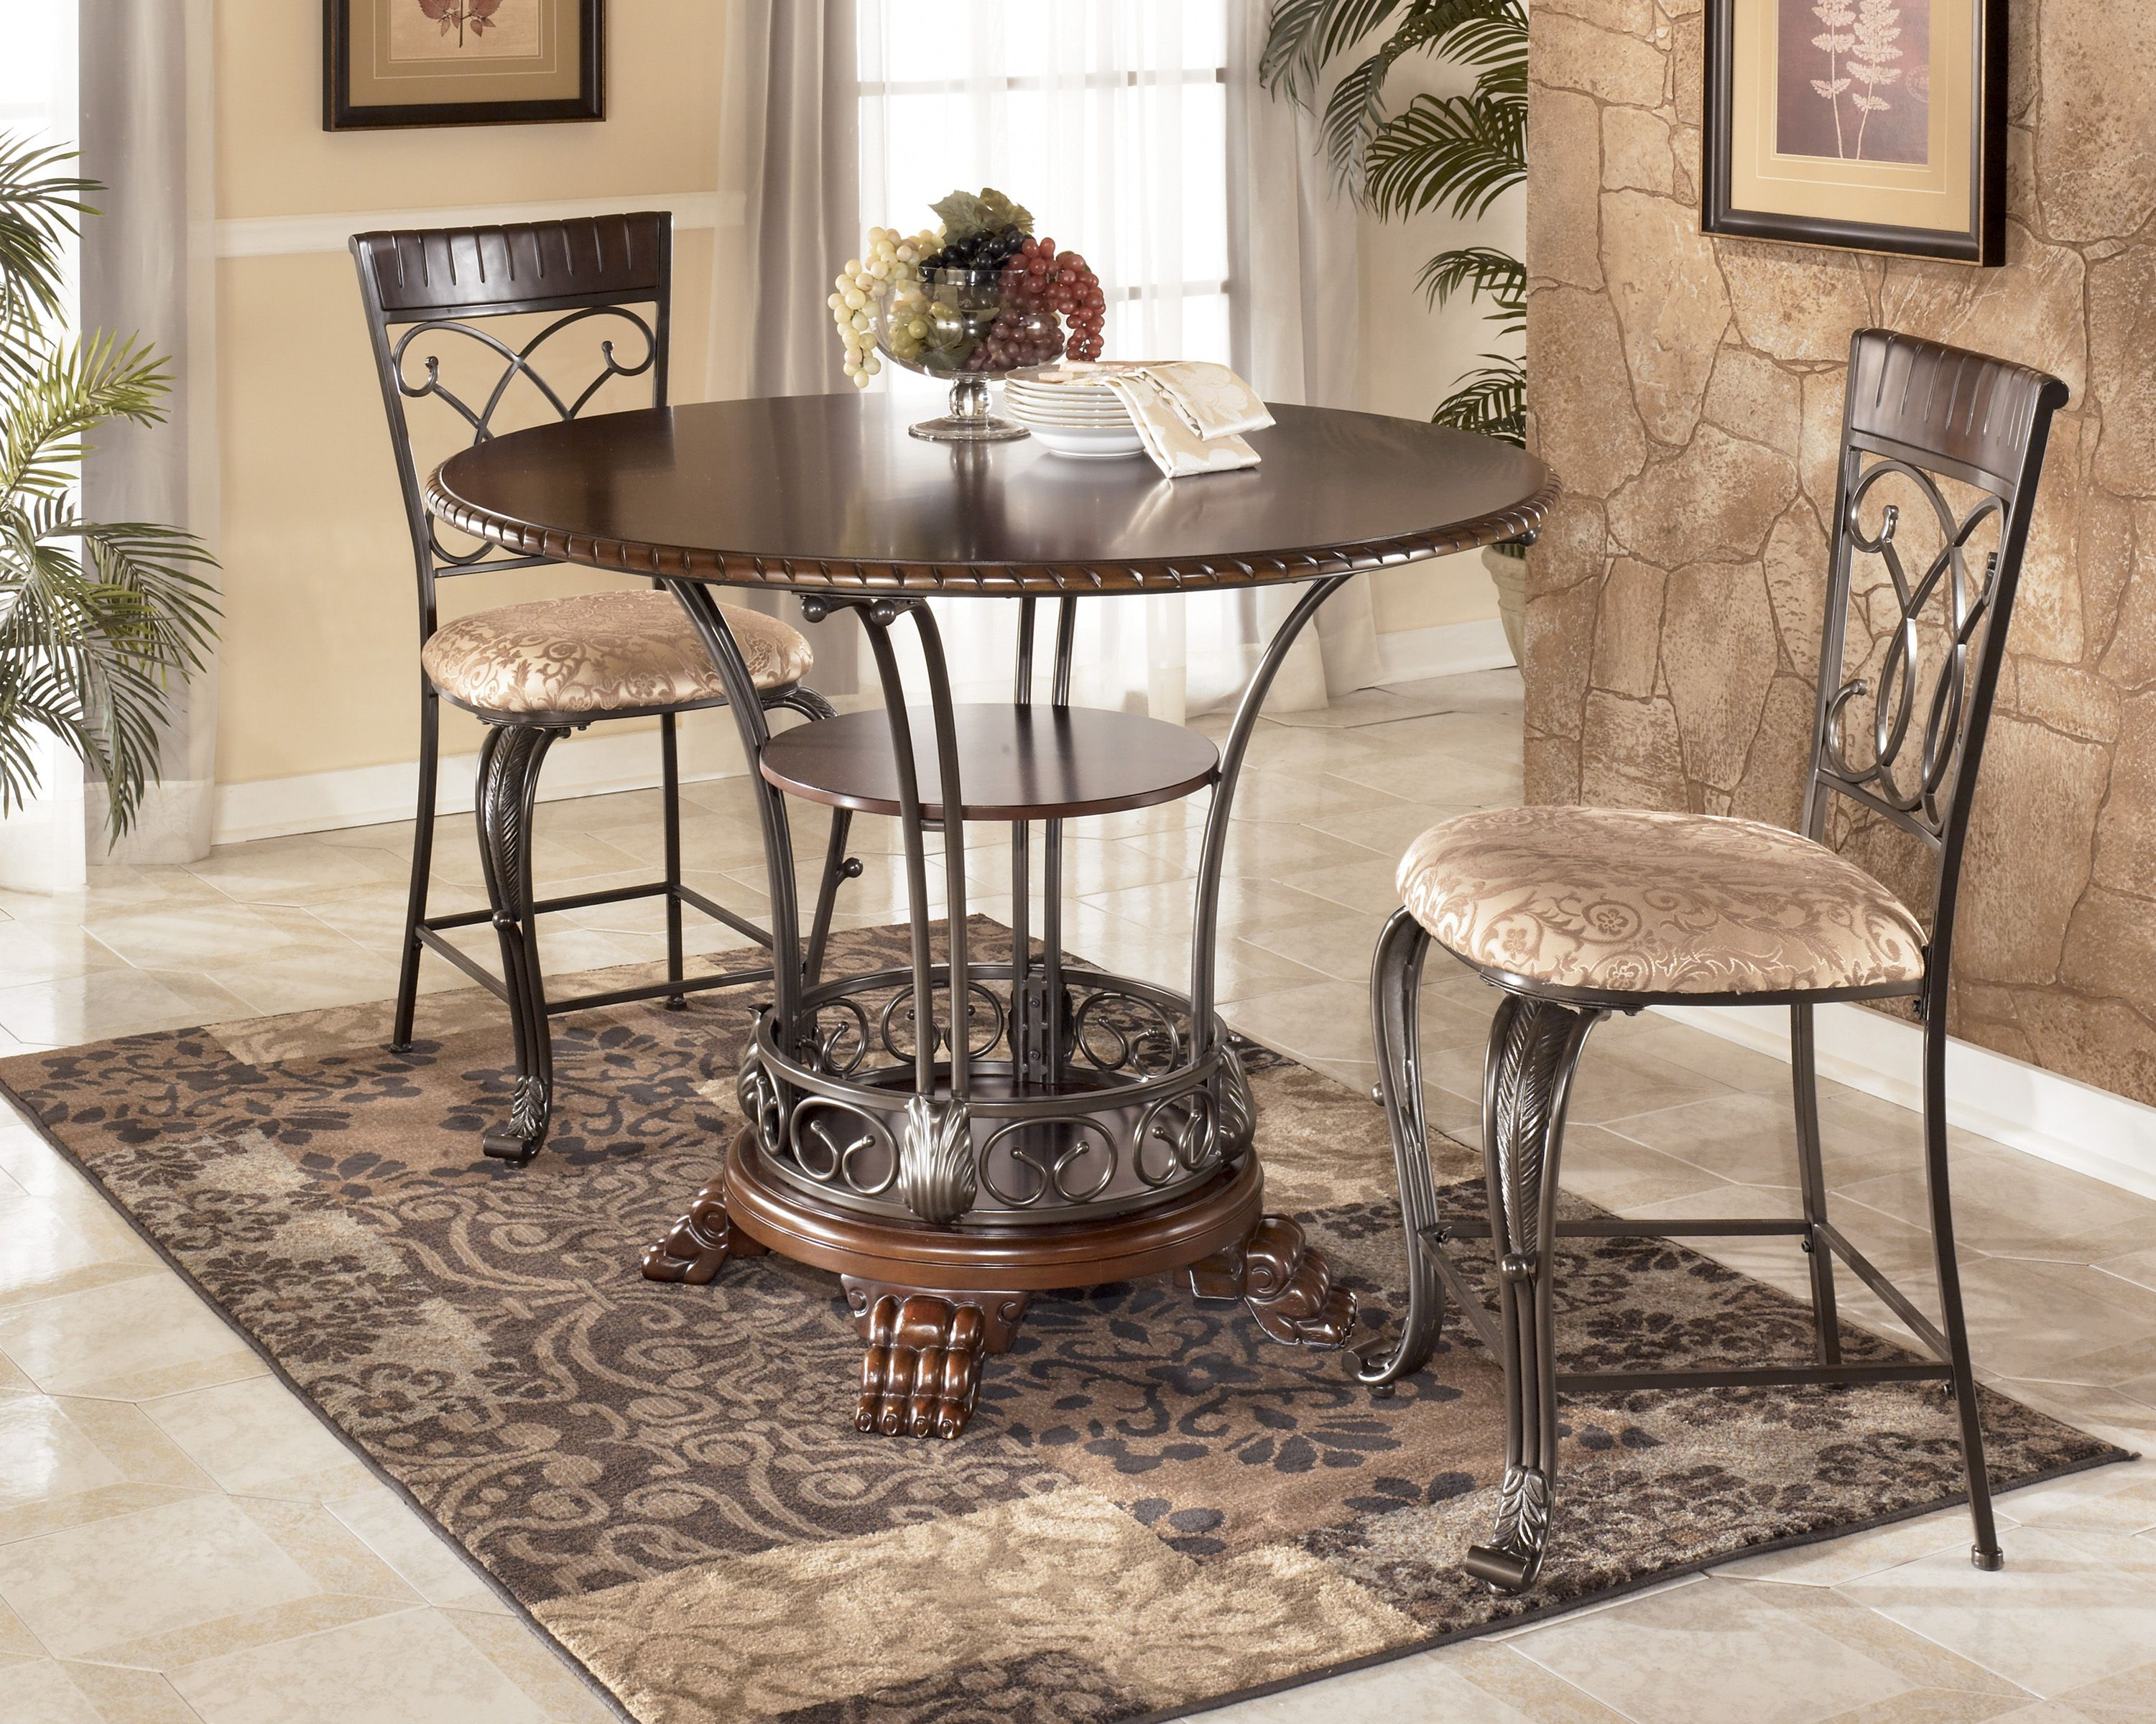 D34532 In By Ashley Furniture In Wichita Ks Round Dining Room